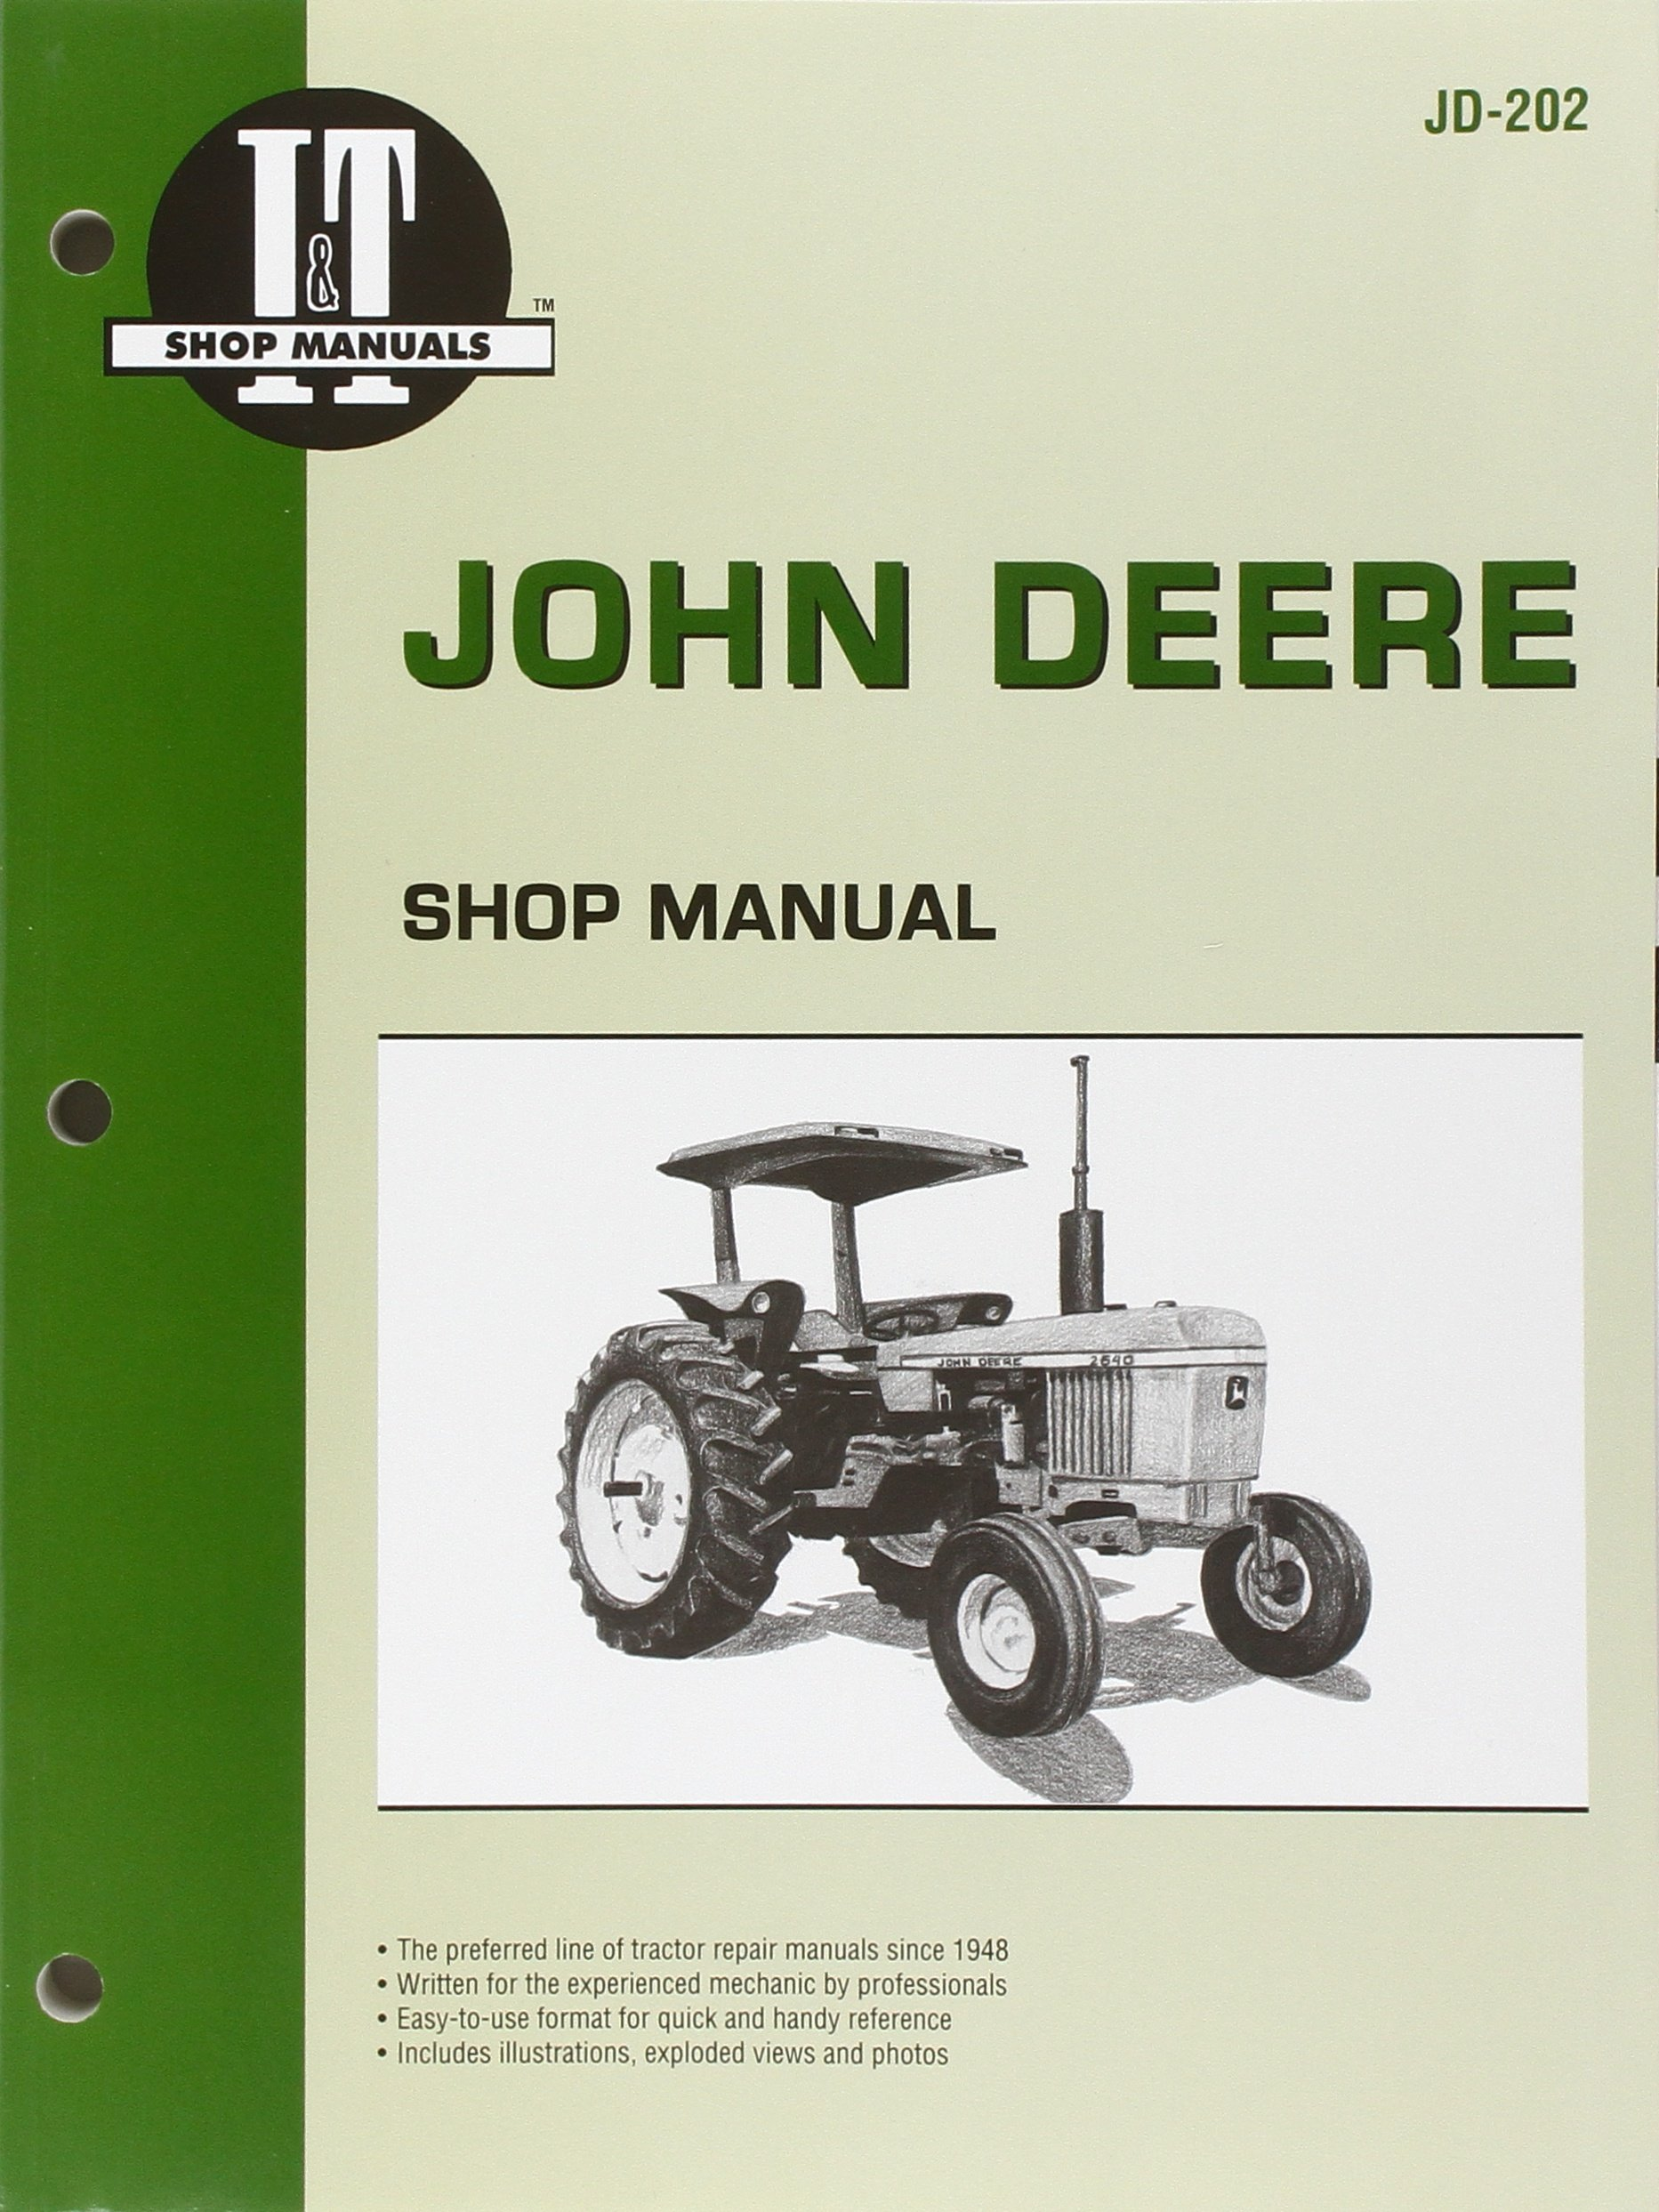 john deere shop manual jd-202 models: 2510, 2520, 2040, 2240, 2440, 2640,  2840, 4040, 4240, 4440, 4640, 4840 (i&t shop service) paperback – may 24,  2000